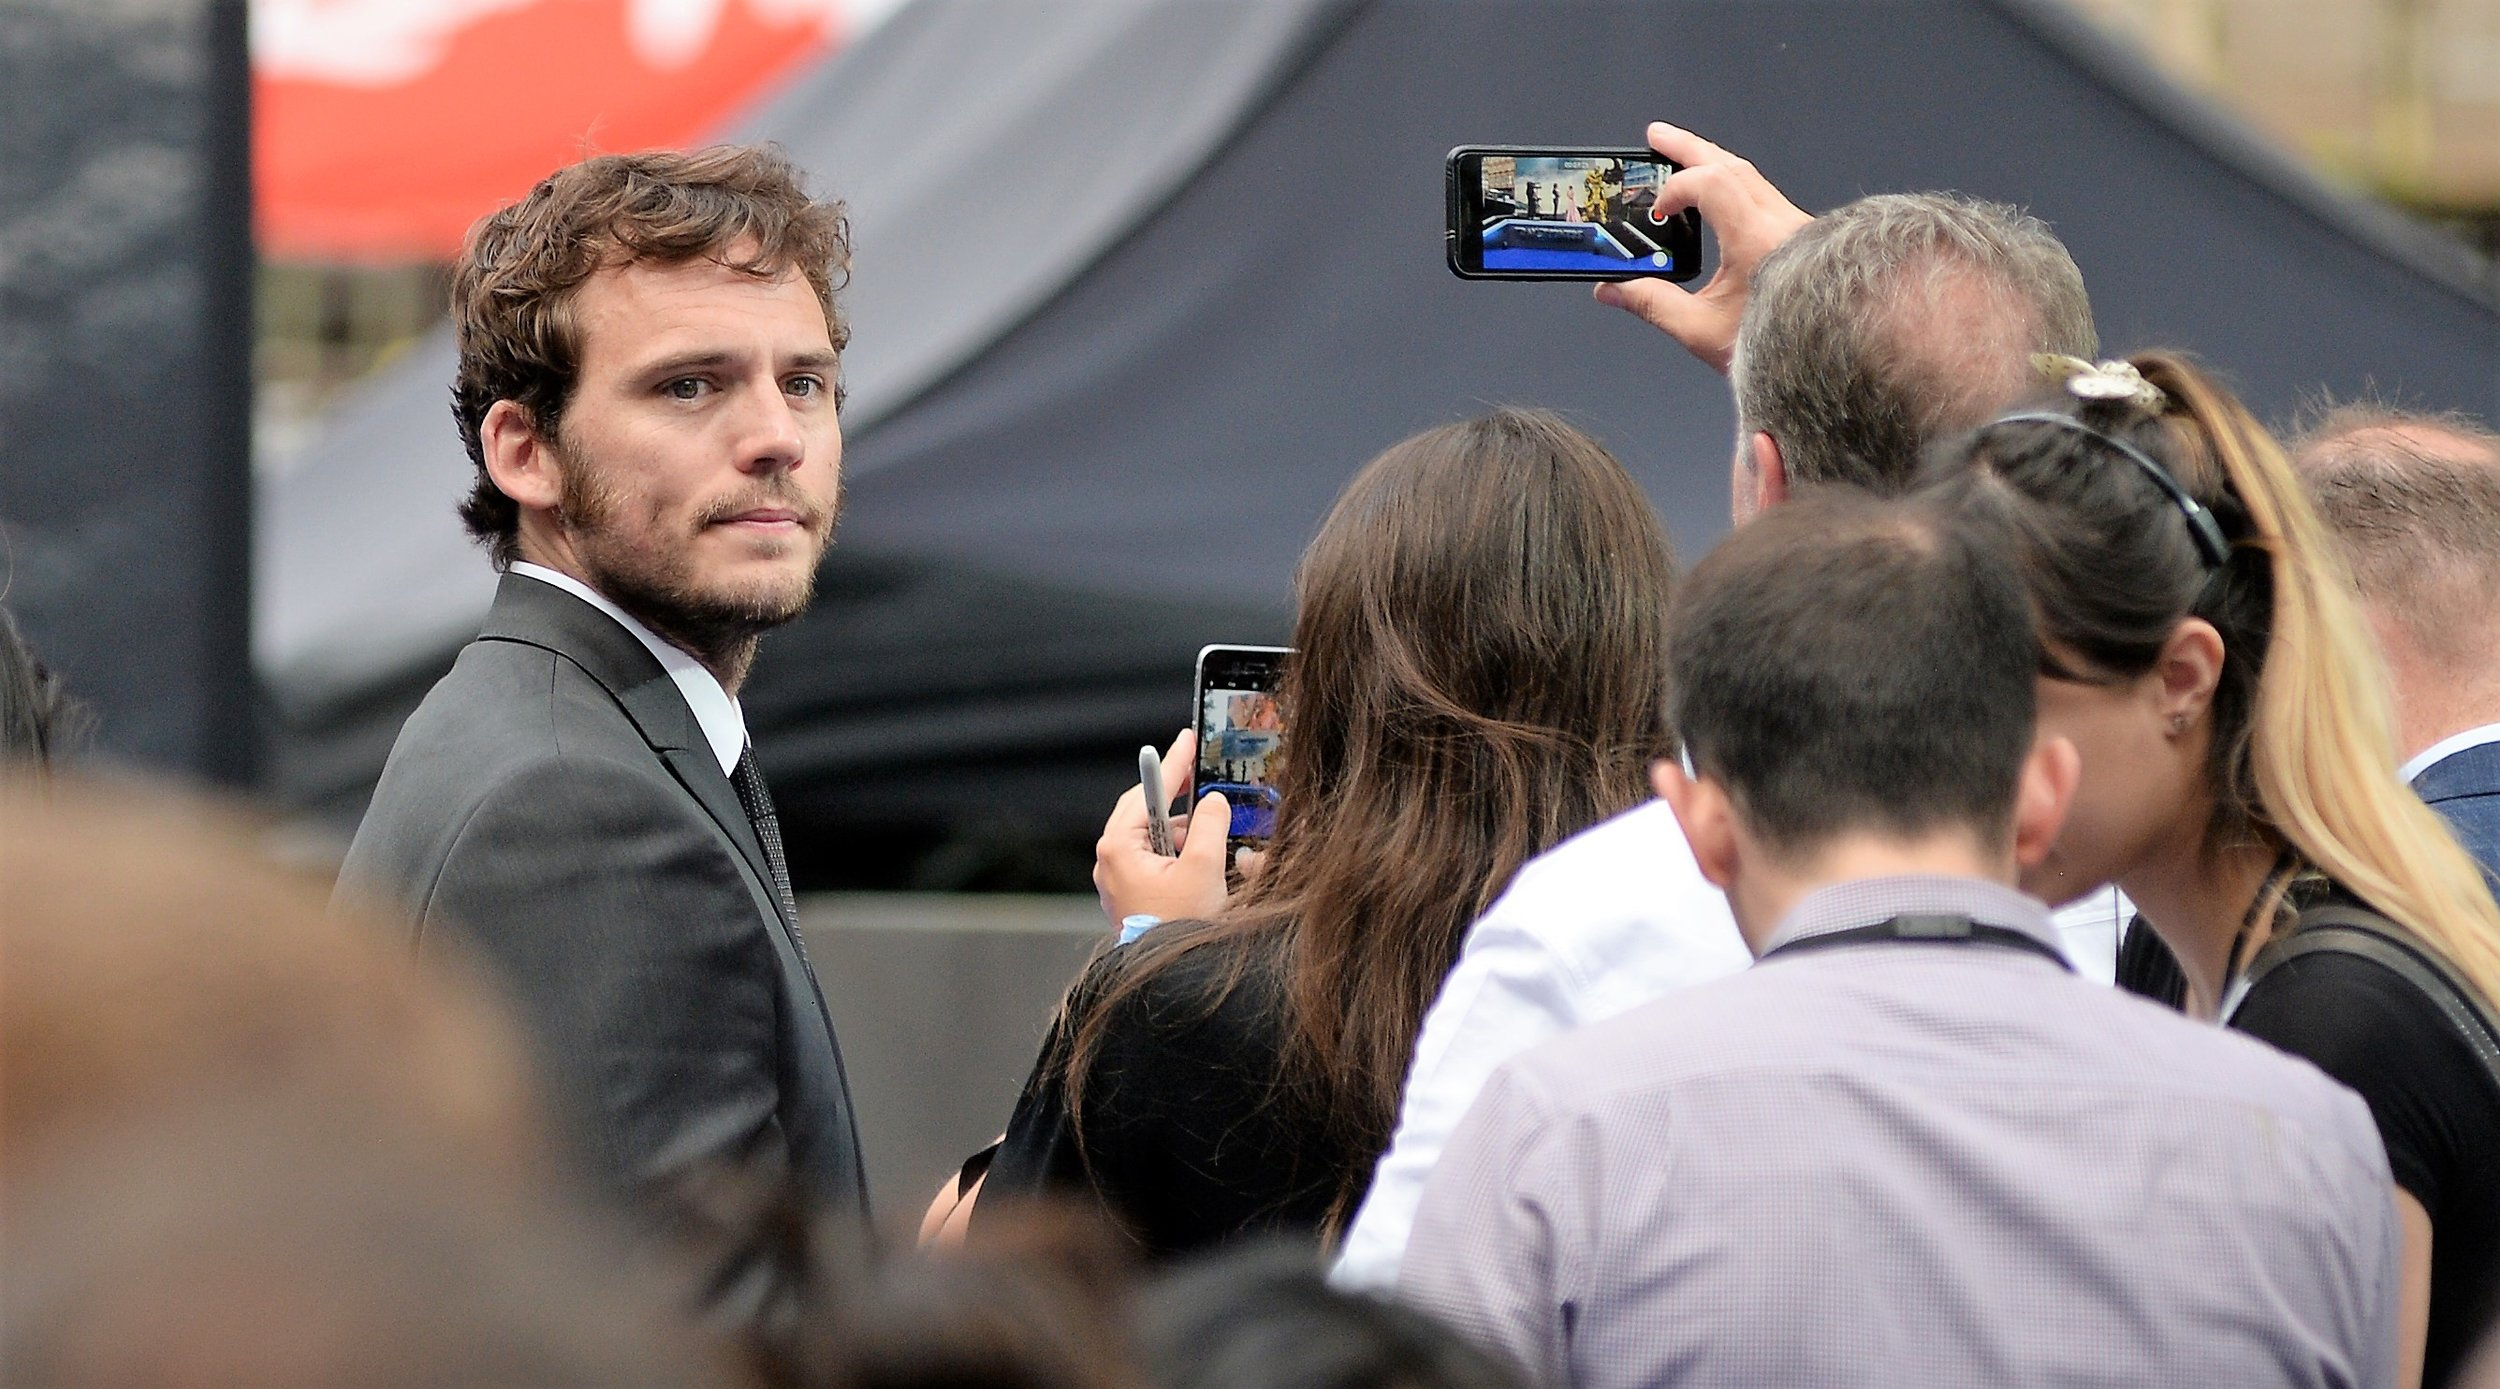 Sam Claflin isn't in this movie, but it married to Laura Haddock who is (conversely, Laura Haddock wasn't in 'My Cousin Rachel' but attended Sam Claflin's premiere because she's married to him) (it's not as complex as it sounds)